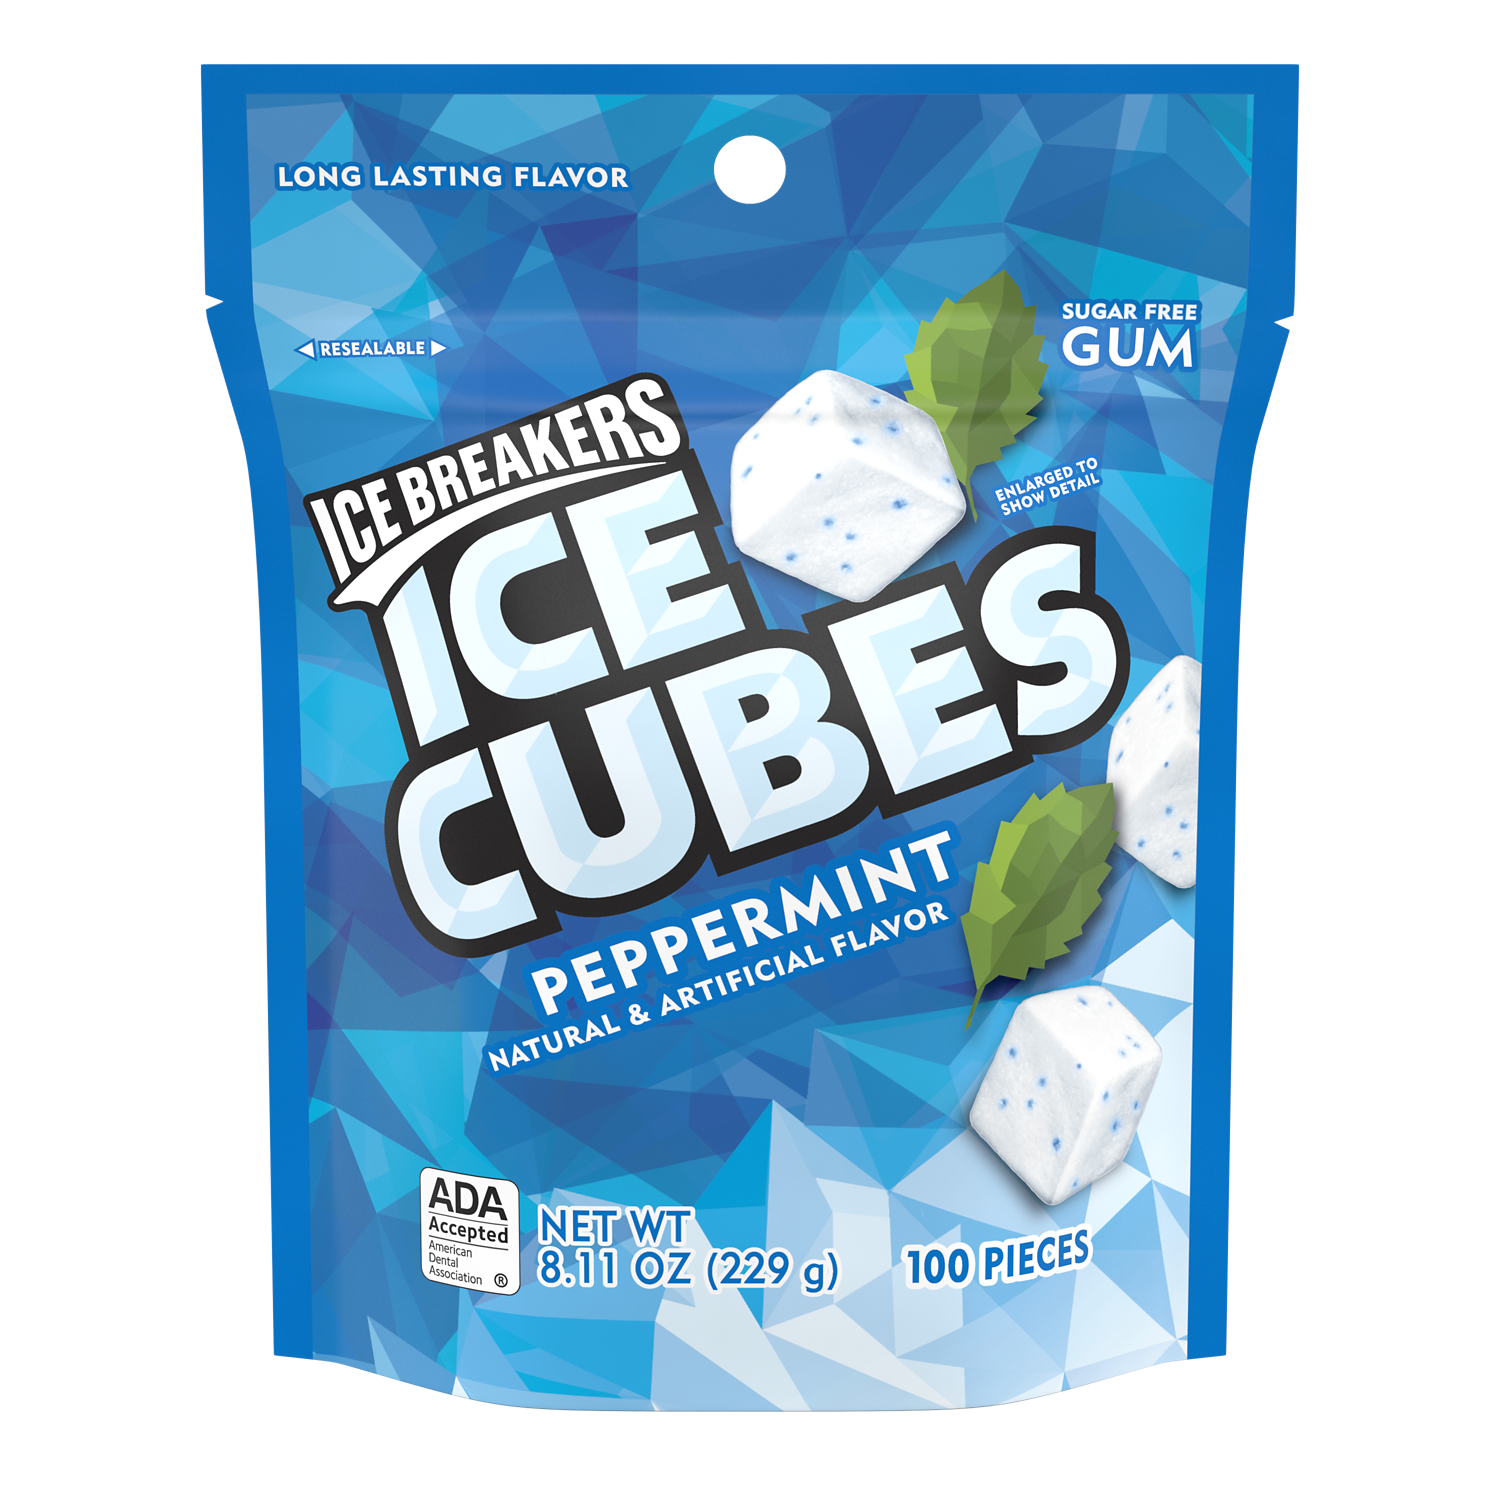 ICE BREAKERS ICE CUBES Peppermint Sugar Free Gum, 8.11 oz bag, 100 pieces - Front of Package